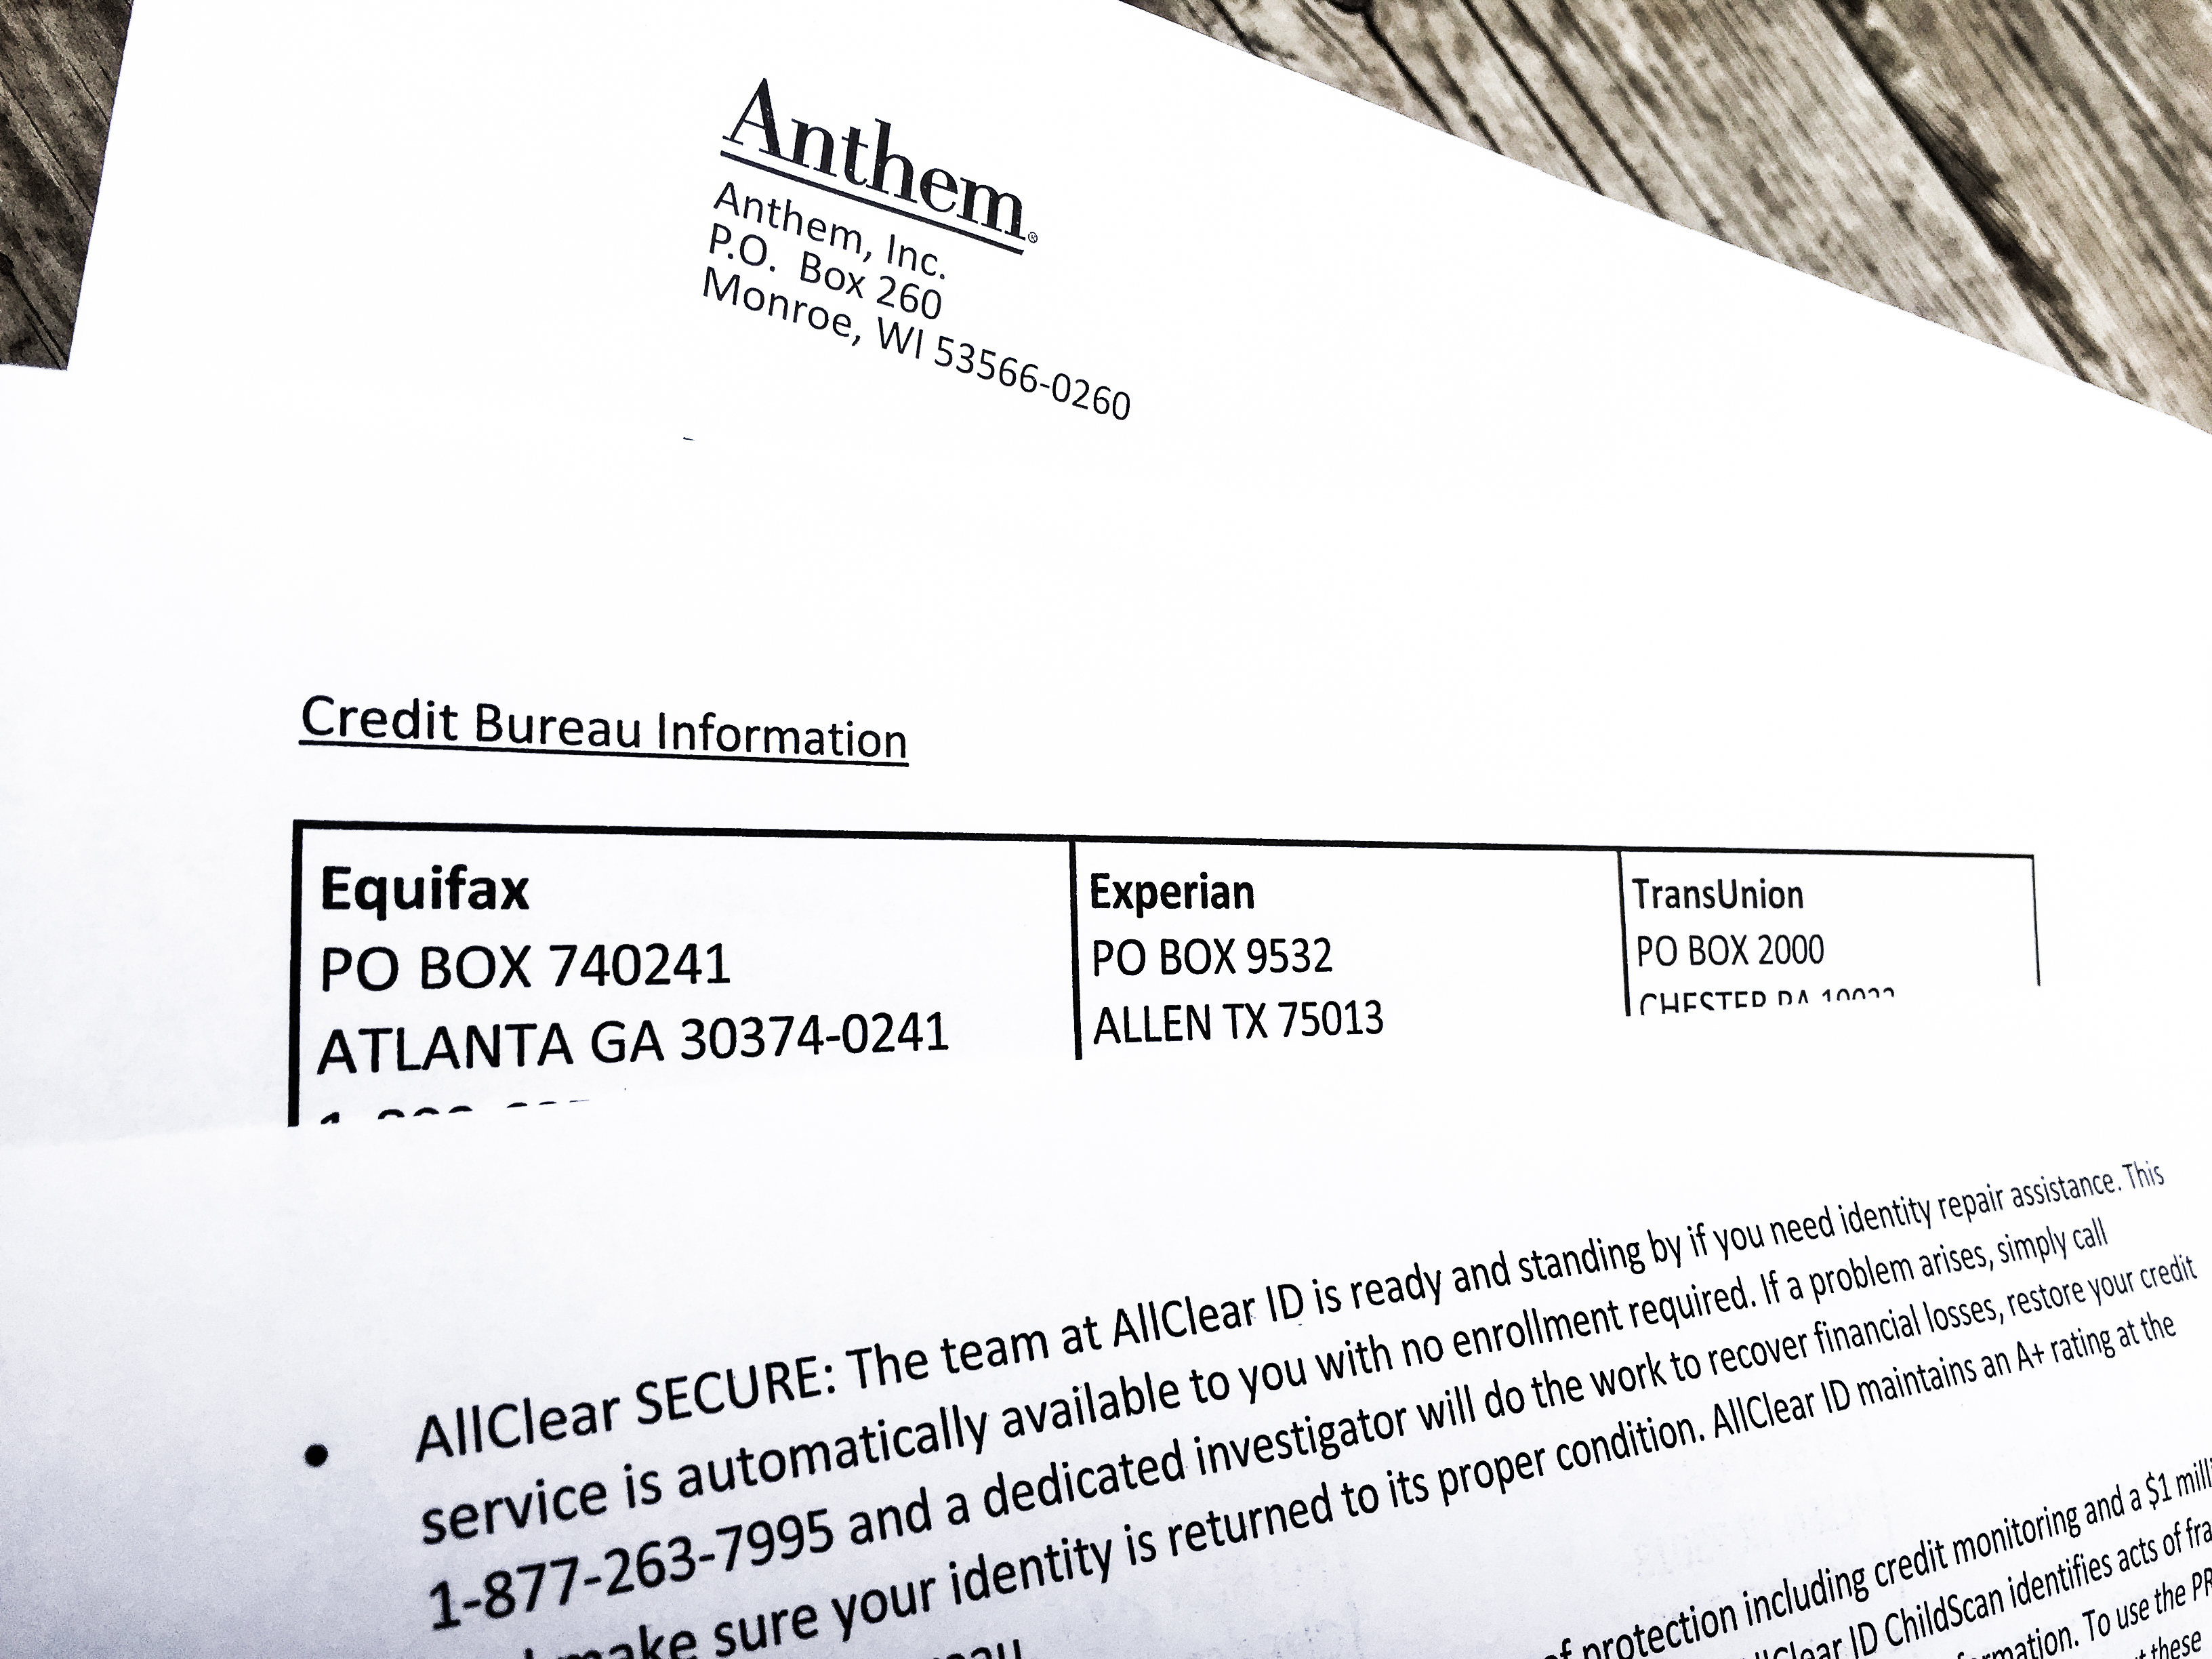 Differences Between Equifax, Experian and Transunion